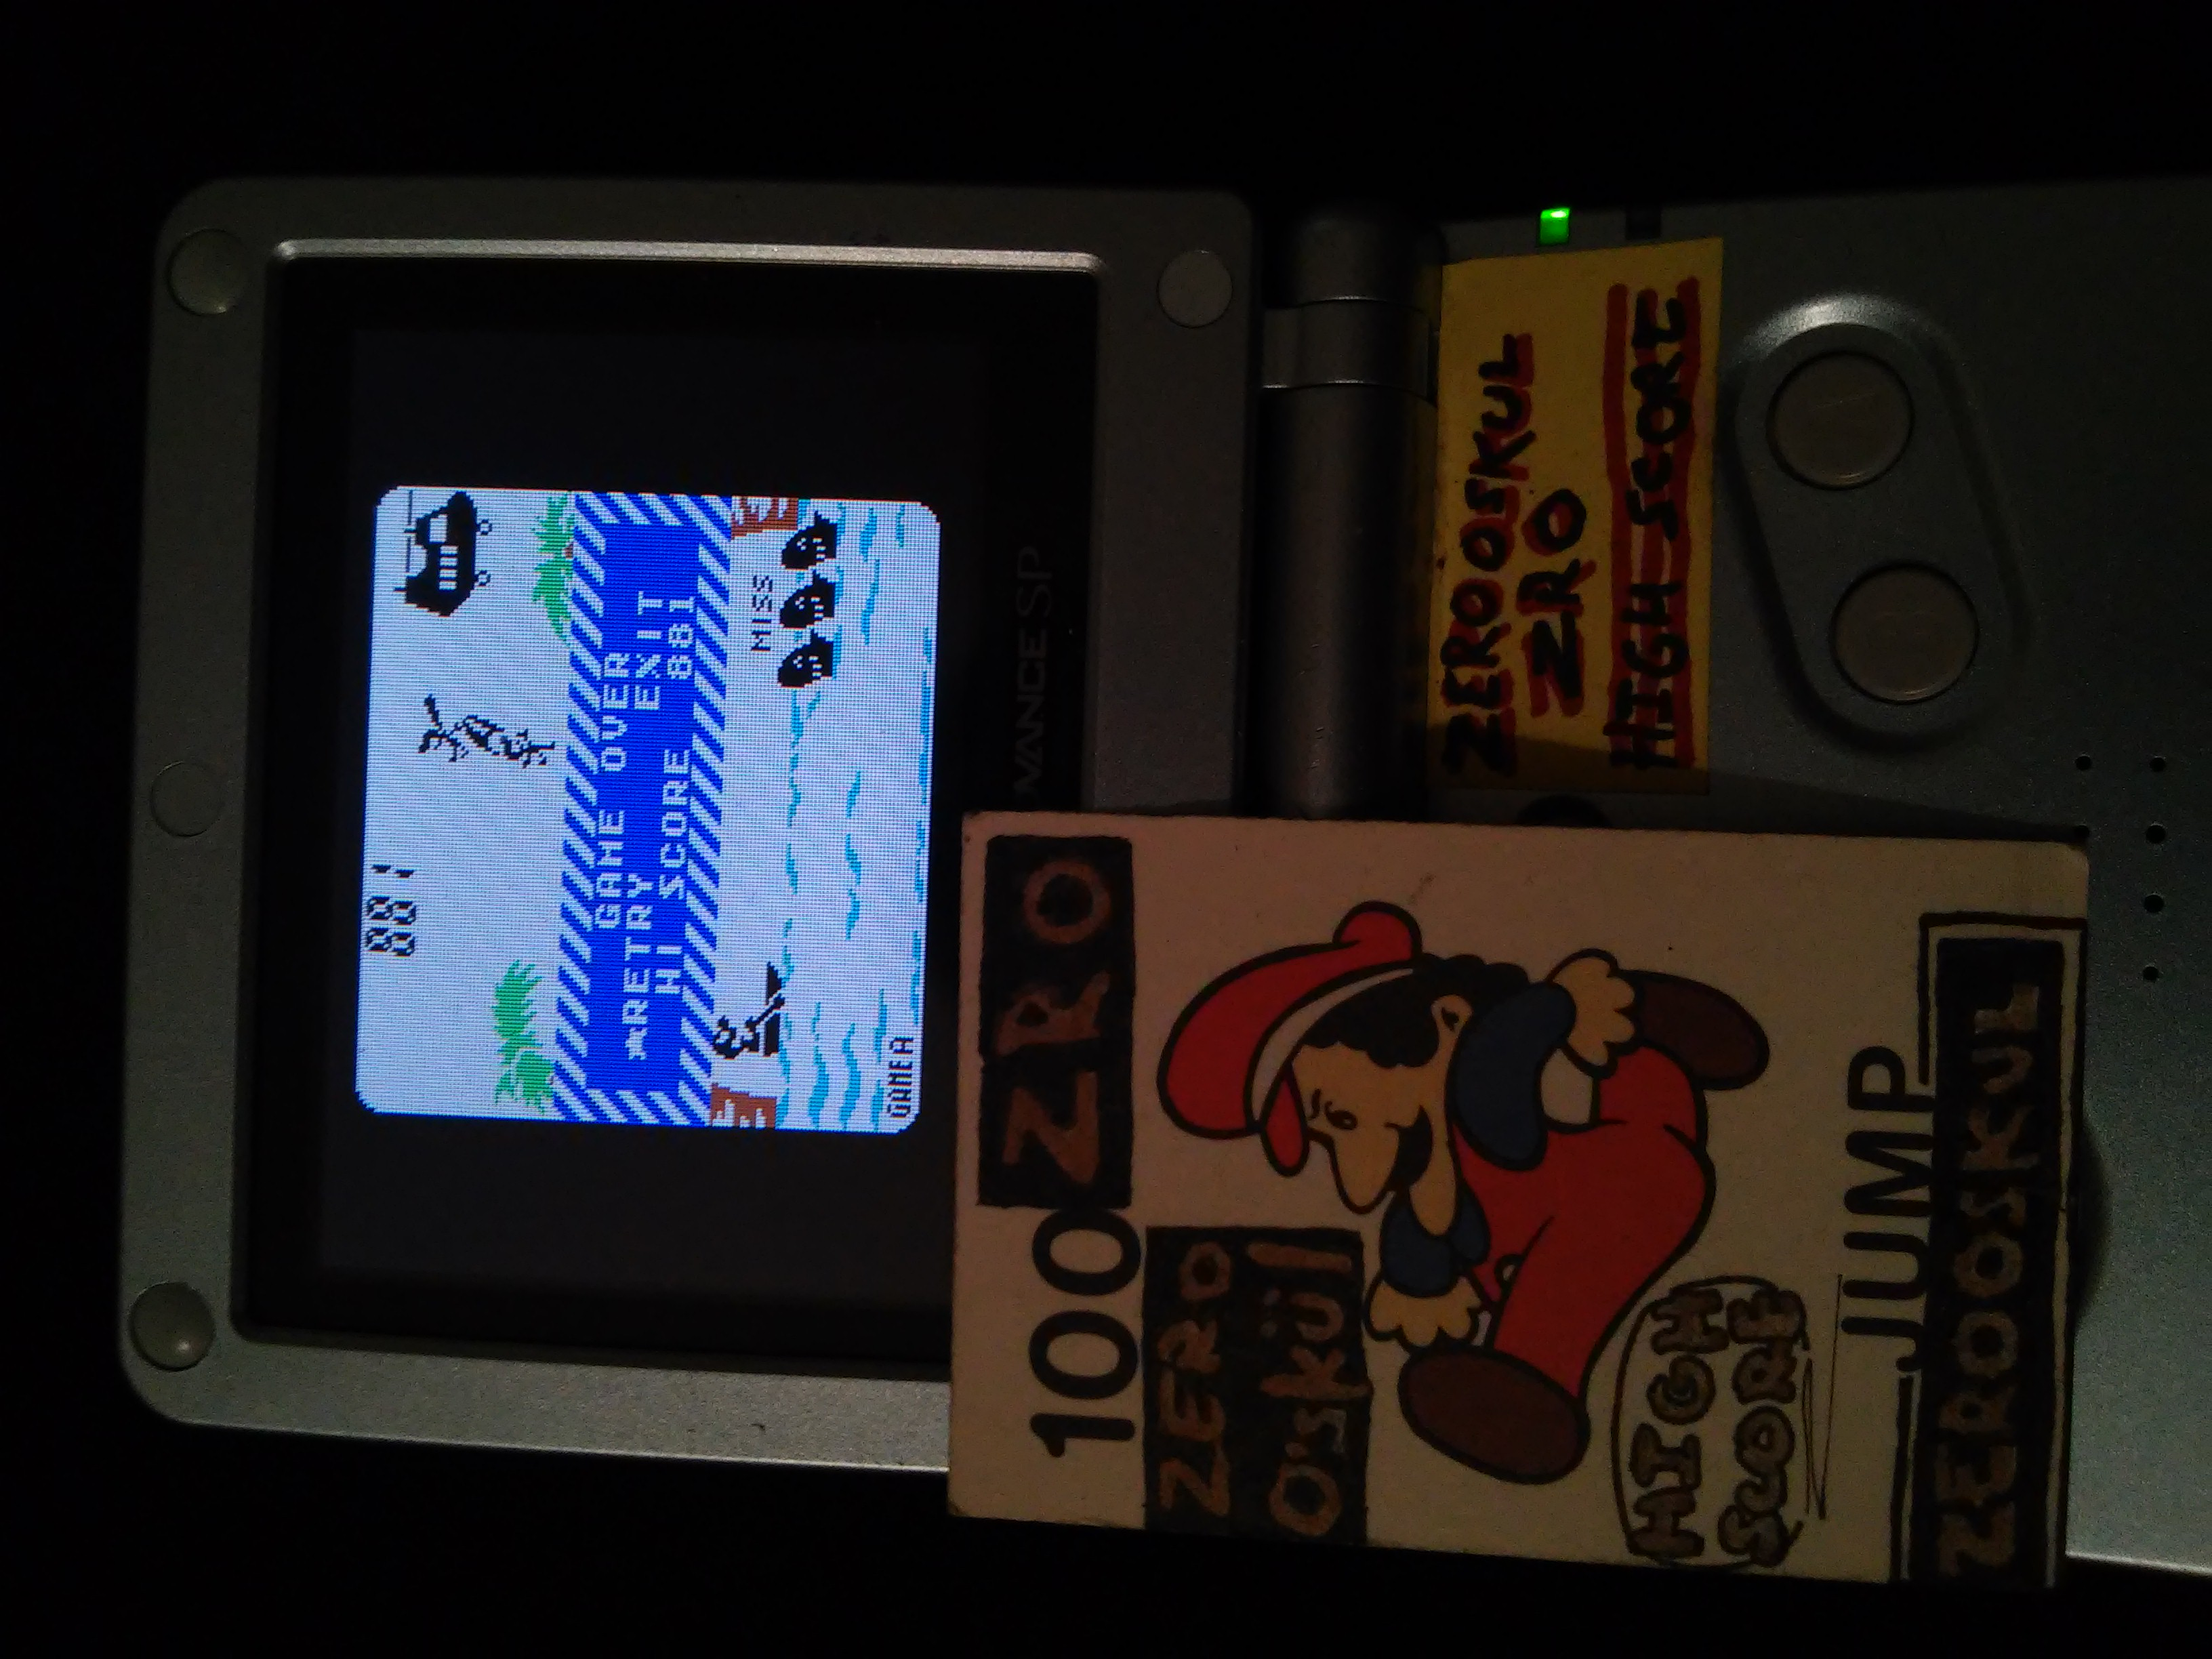 Game & Watch Gallery 2: Parachute: Classic: Easy 881 points